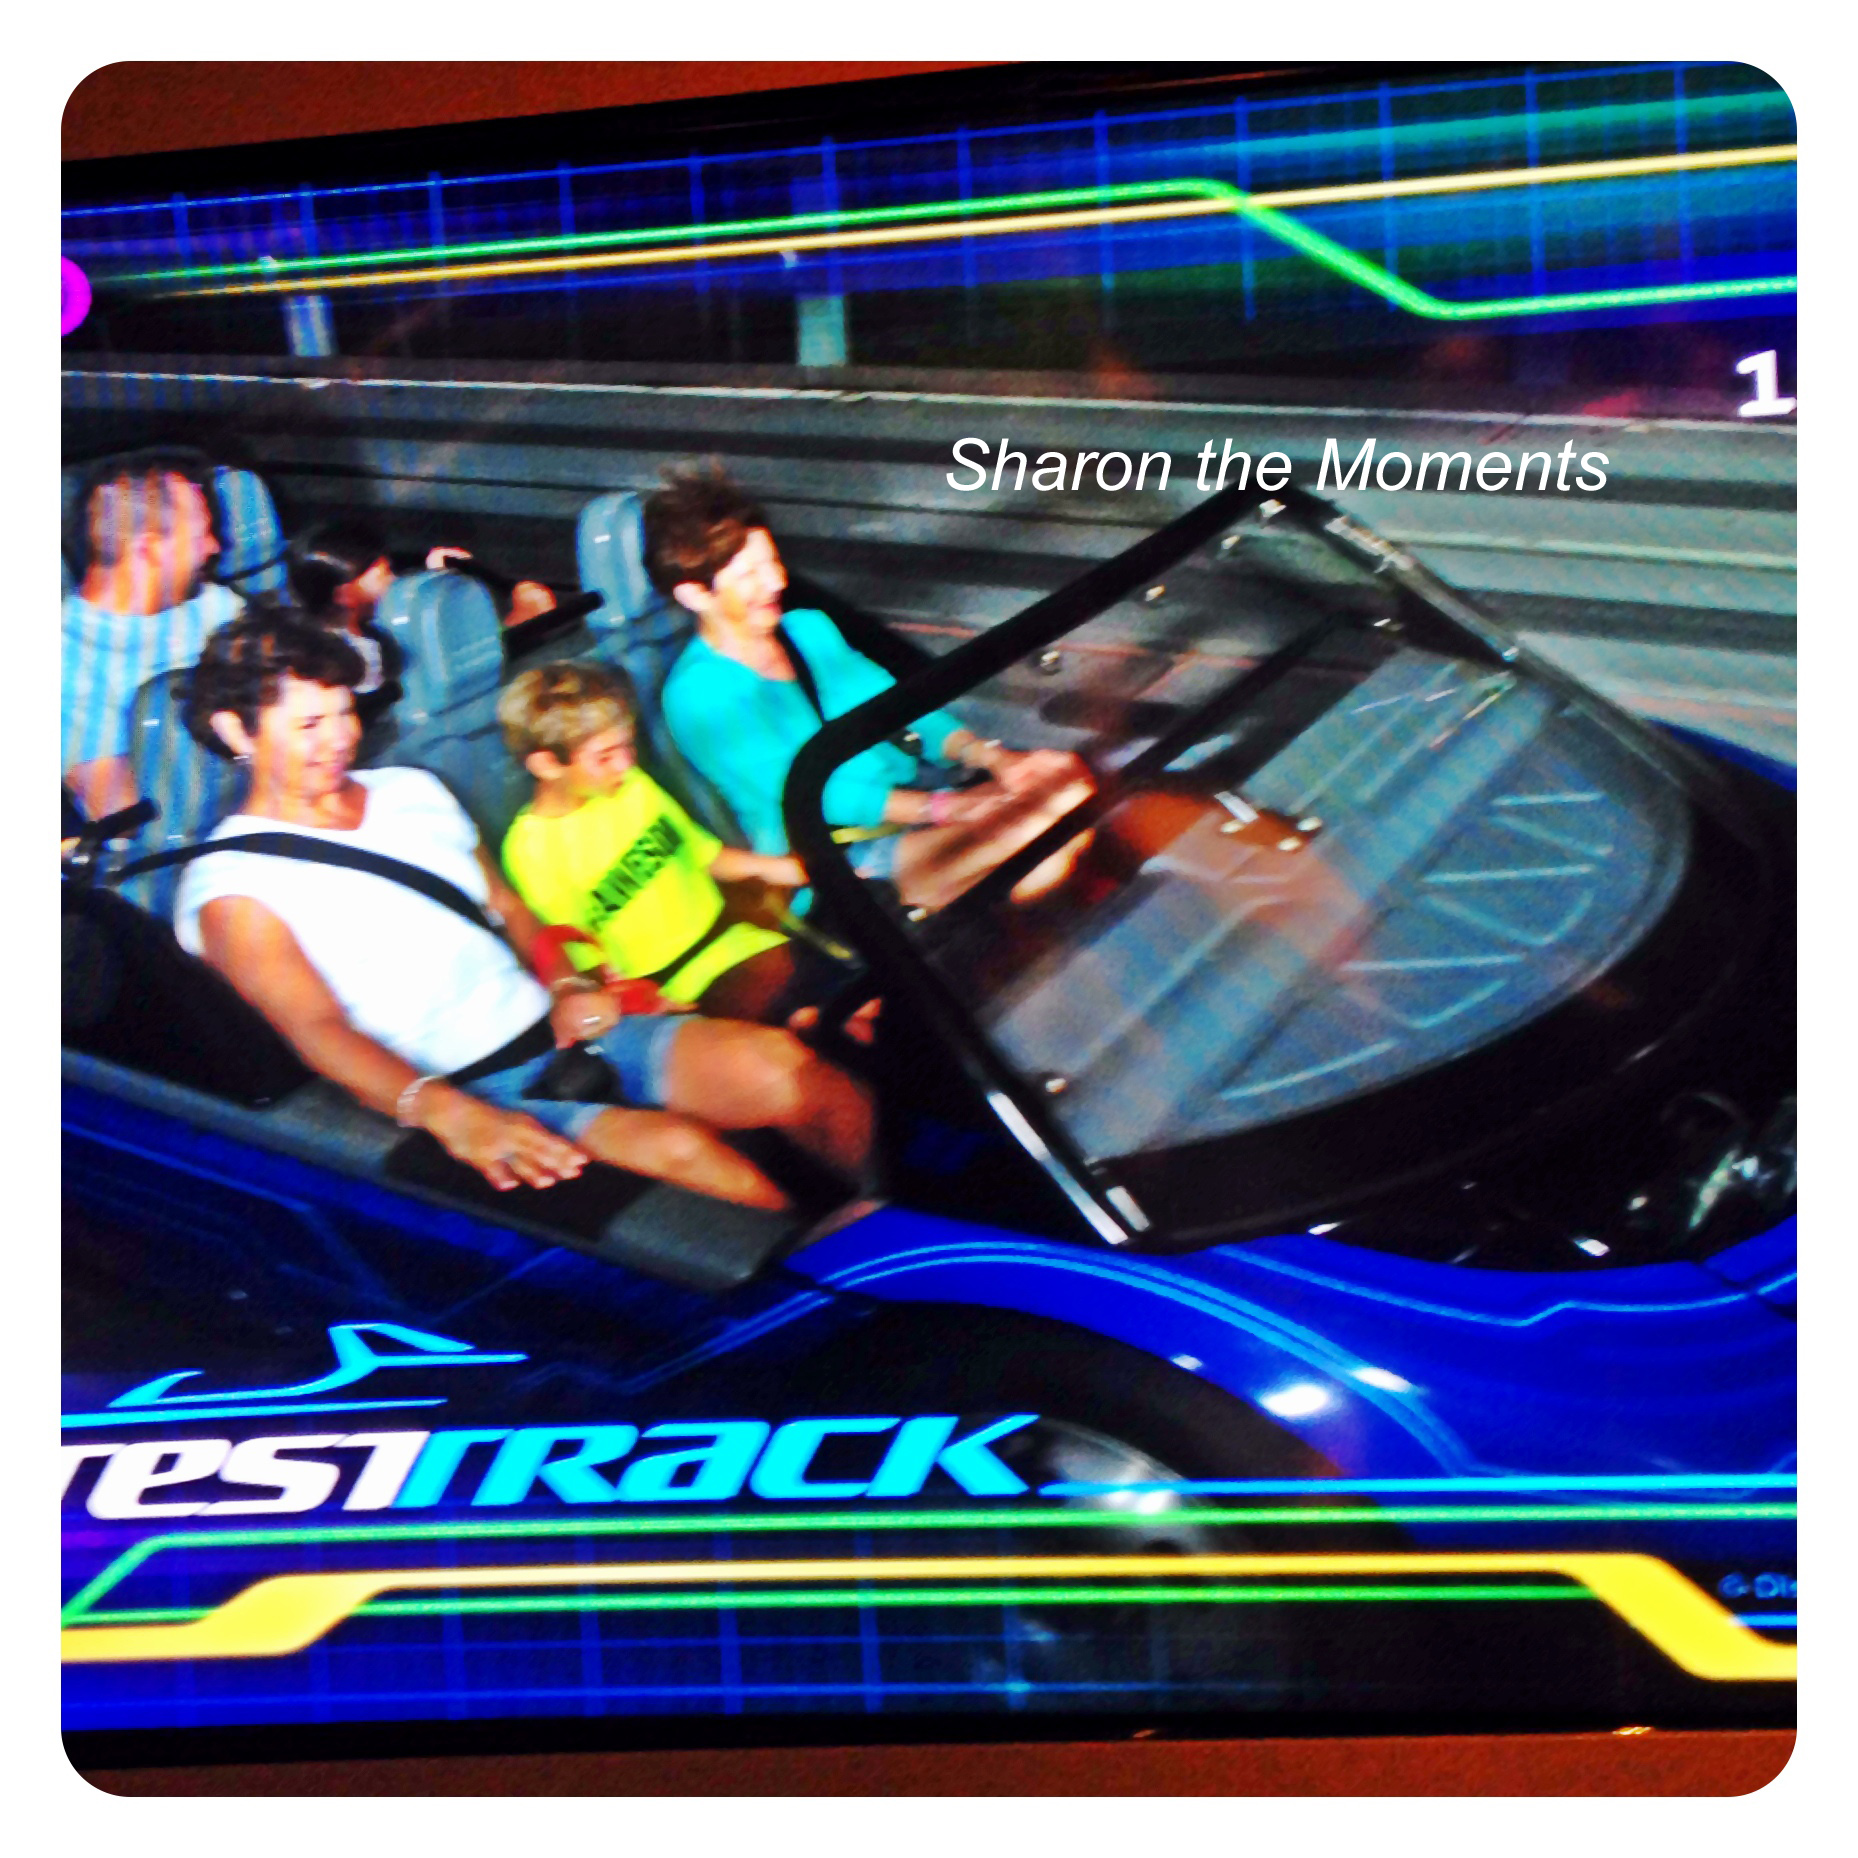 Walt Disney World October Visit Test Track Epcot|Sharon the Moments Blog